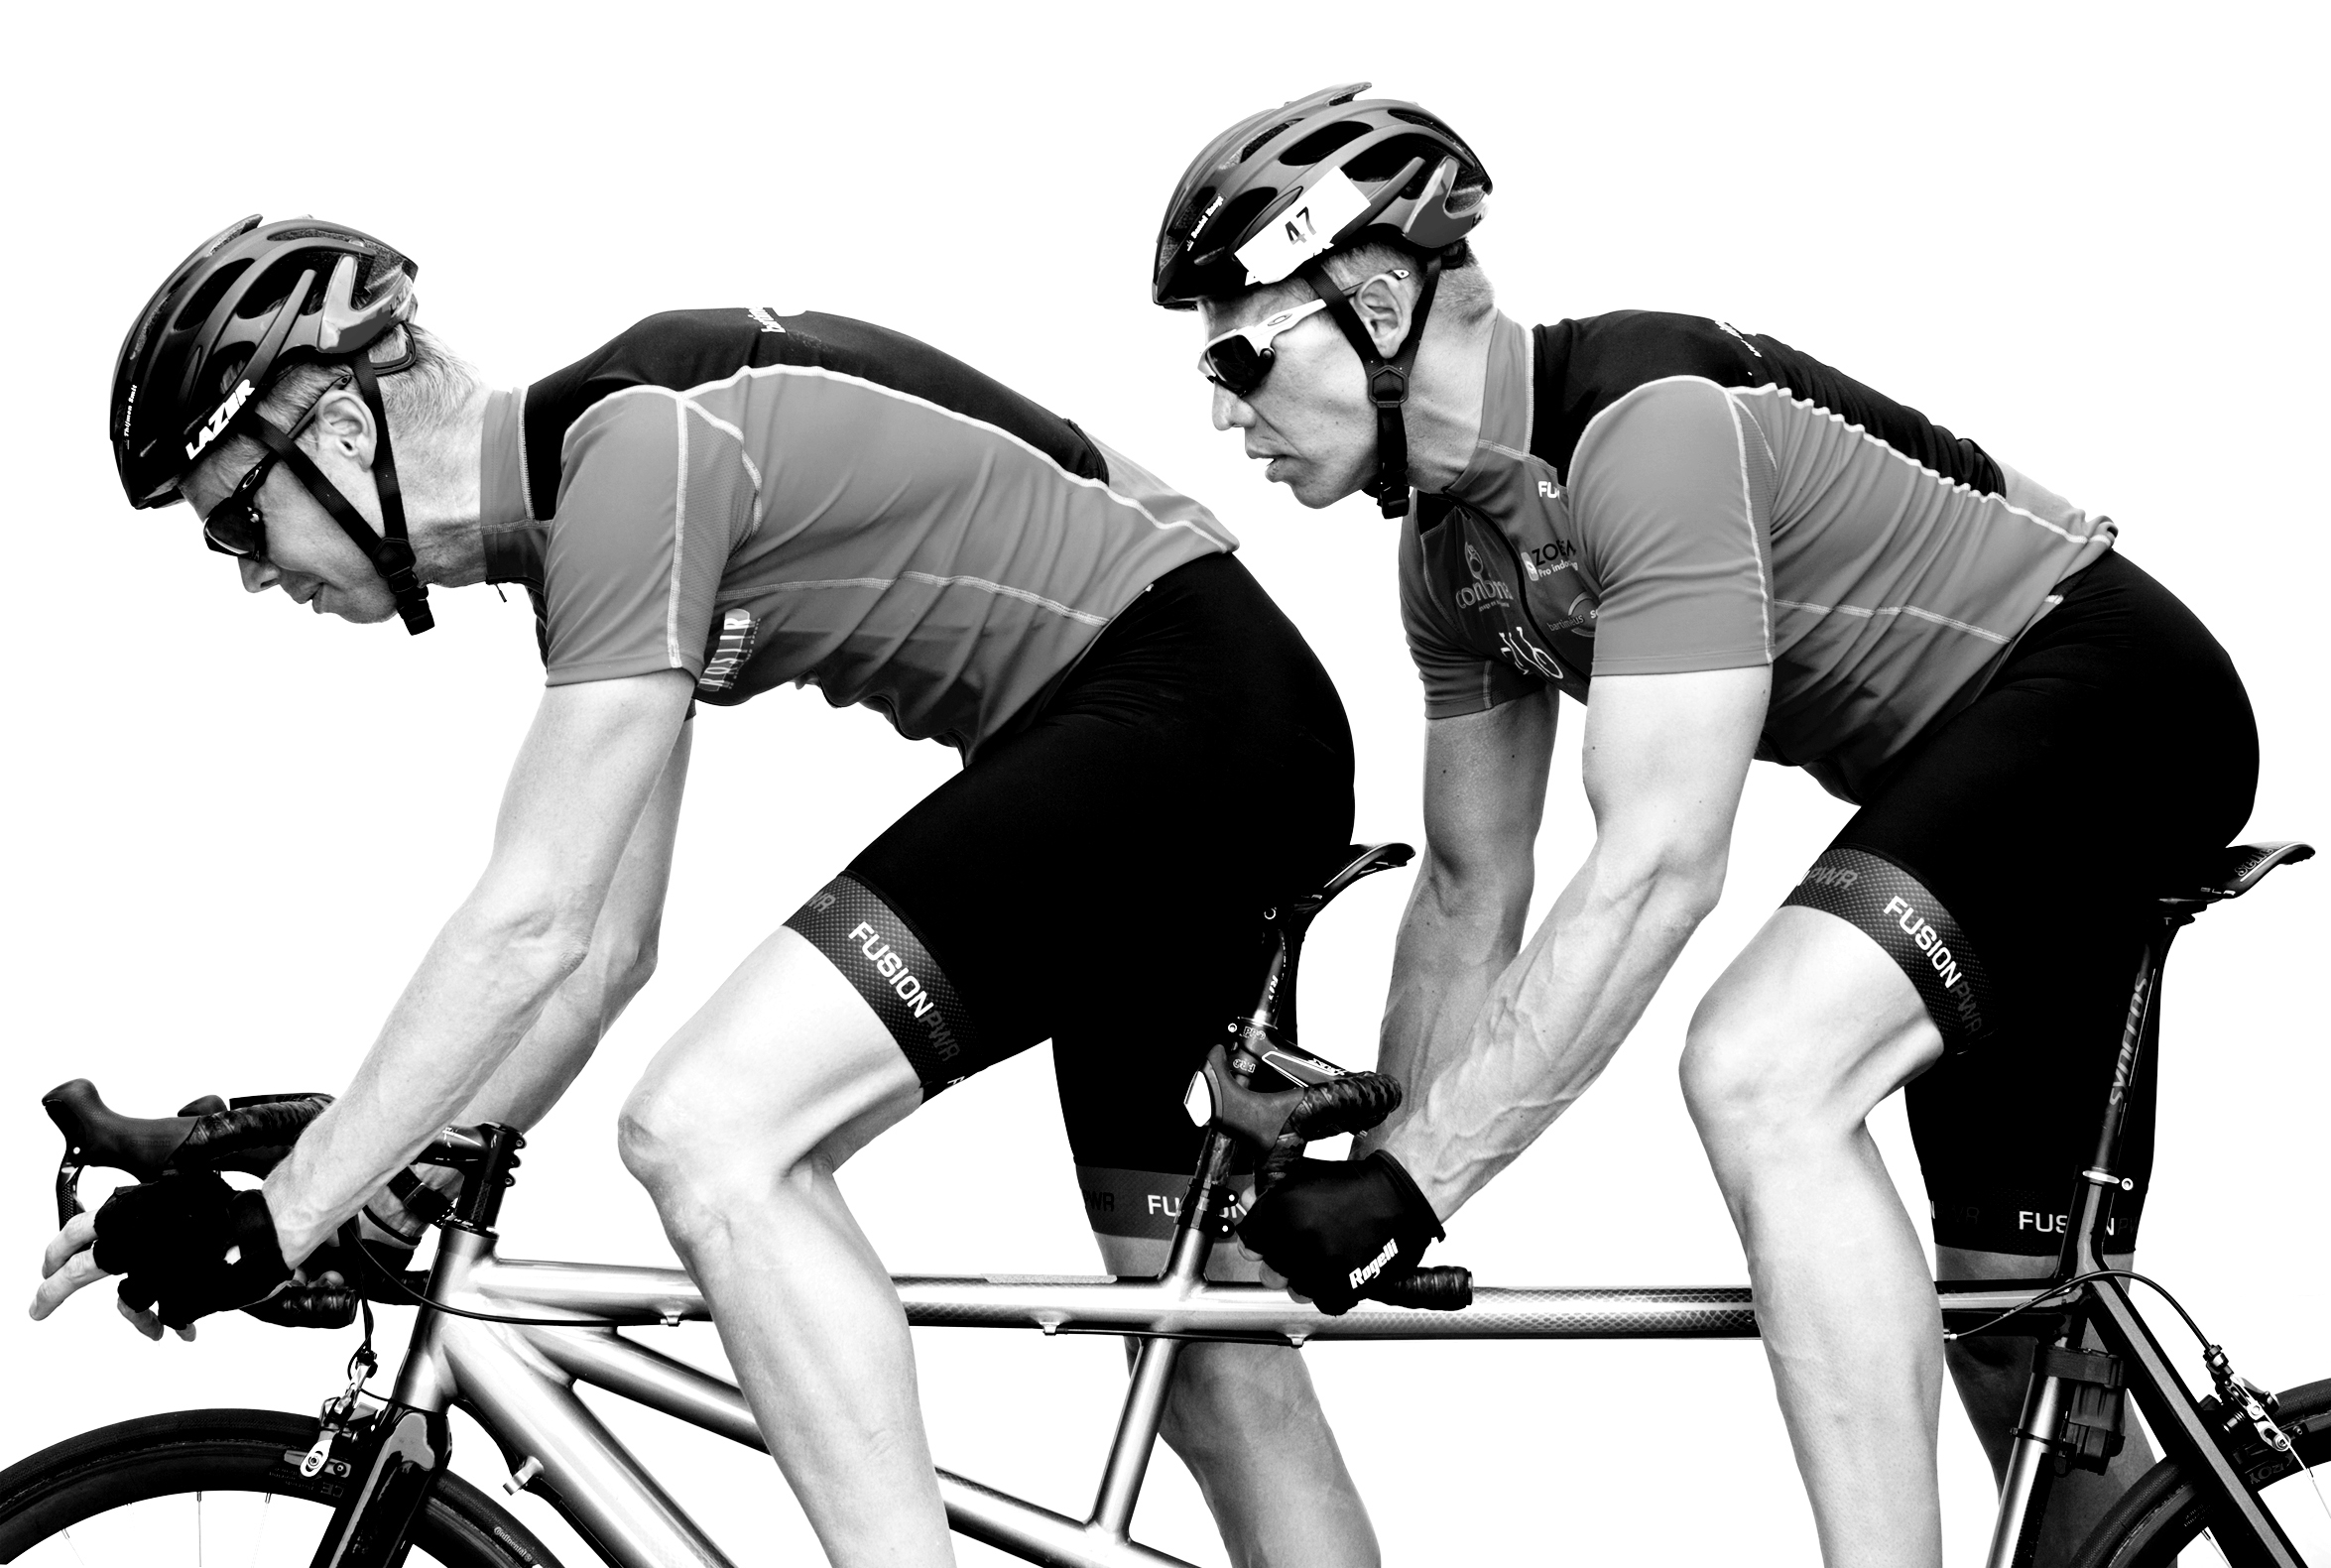 Cor Van Leeuwen (front) and Daniel Knegt (back), Netherlands, competed in swimming, cycling and track